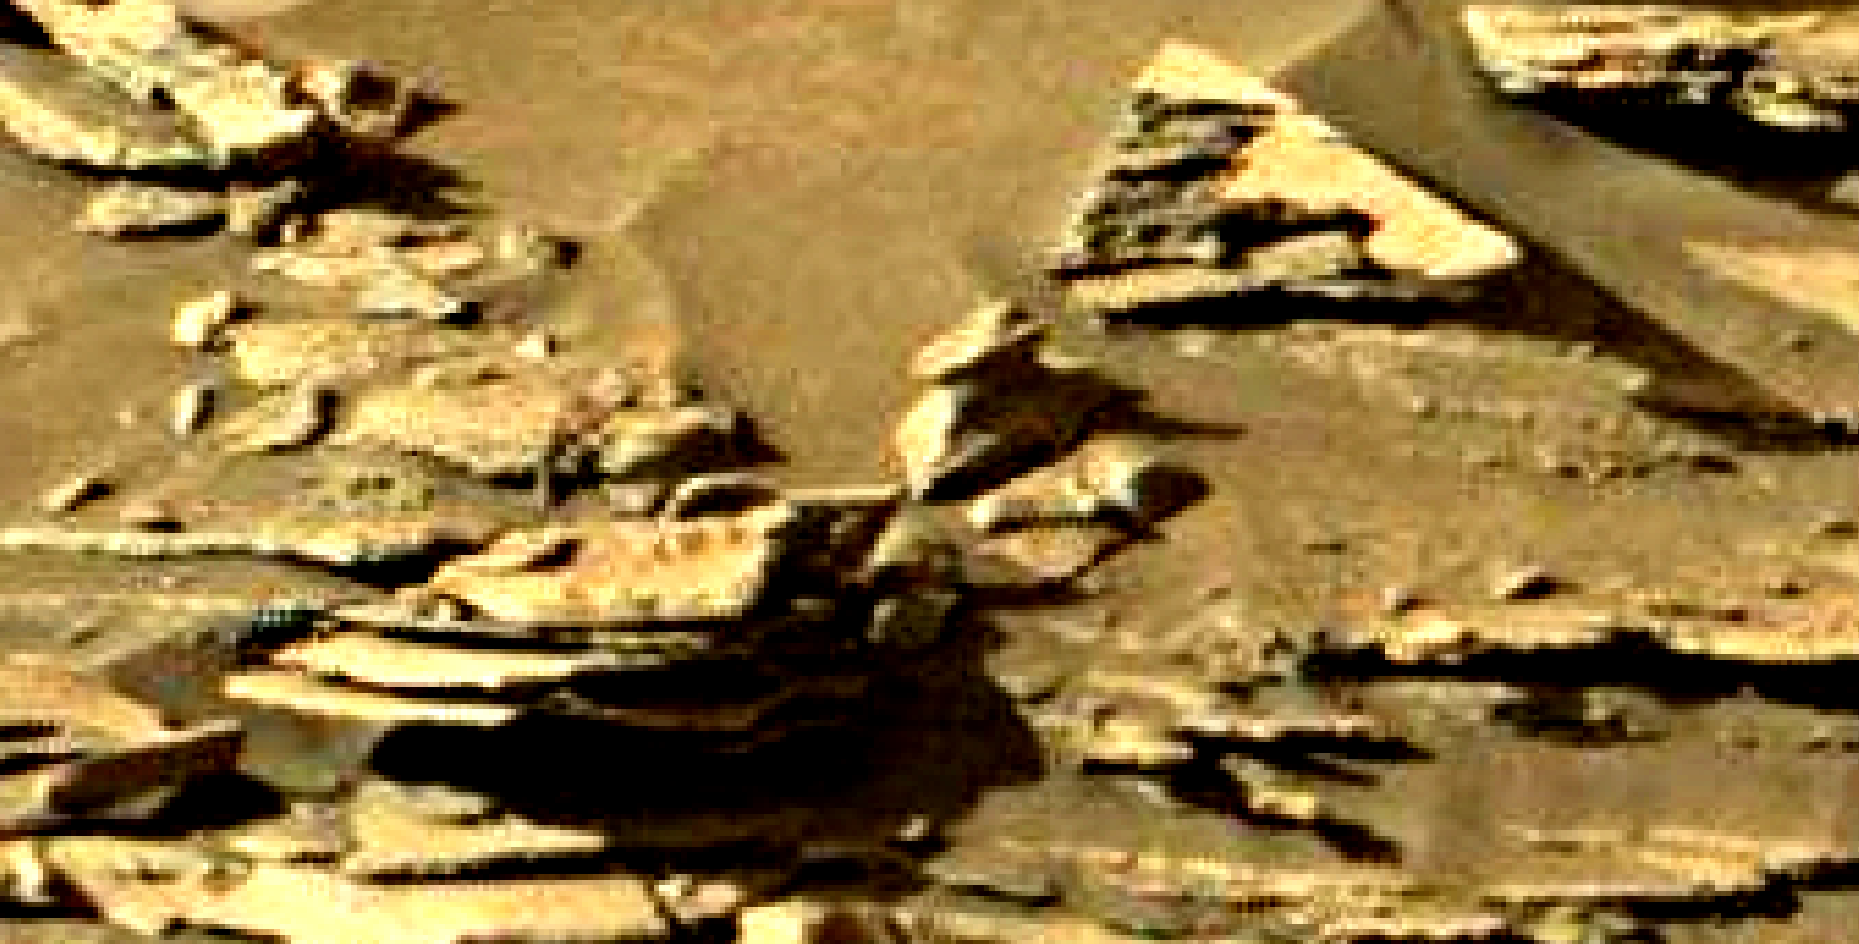 mars sol 1301 anomaly-artifacts 9 was life on mars